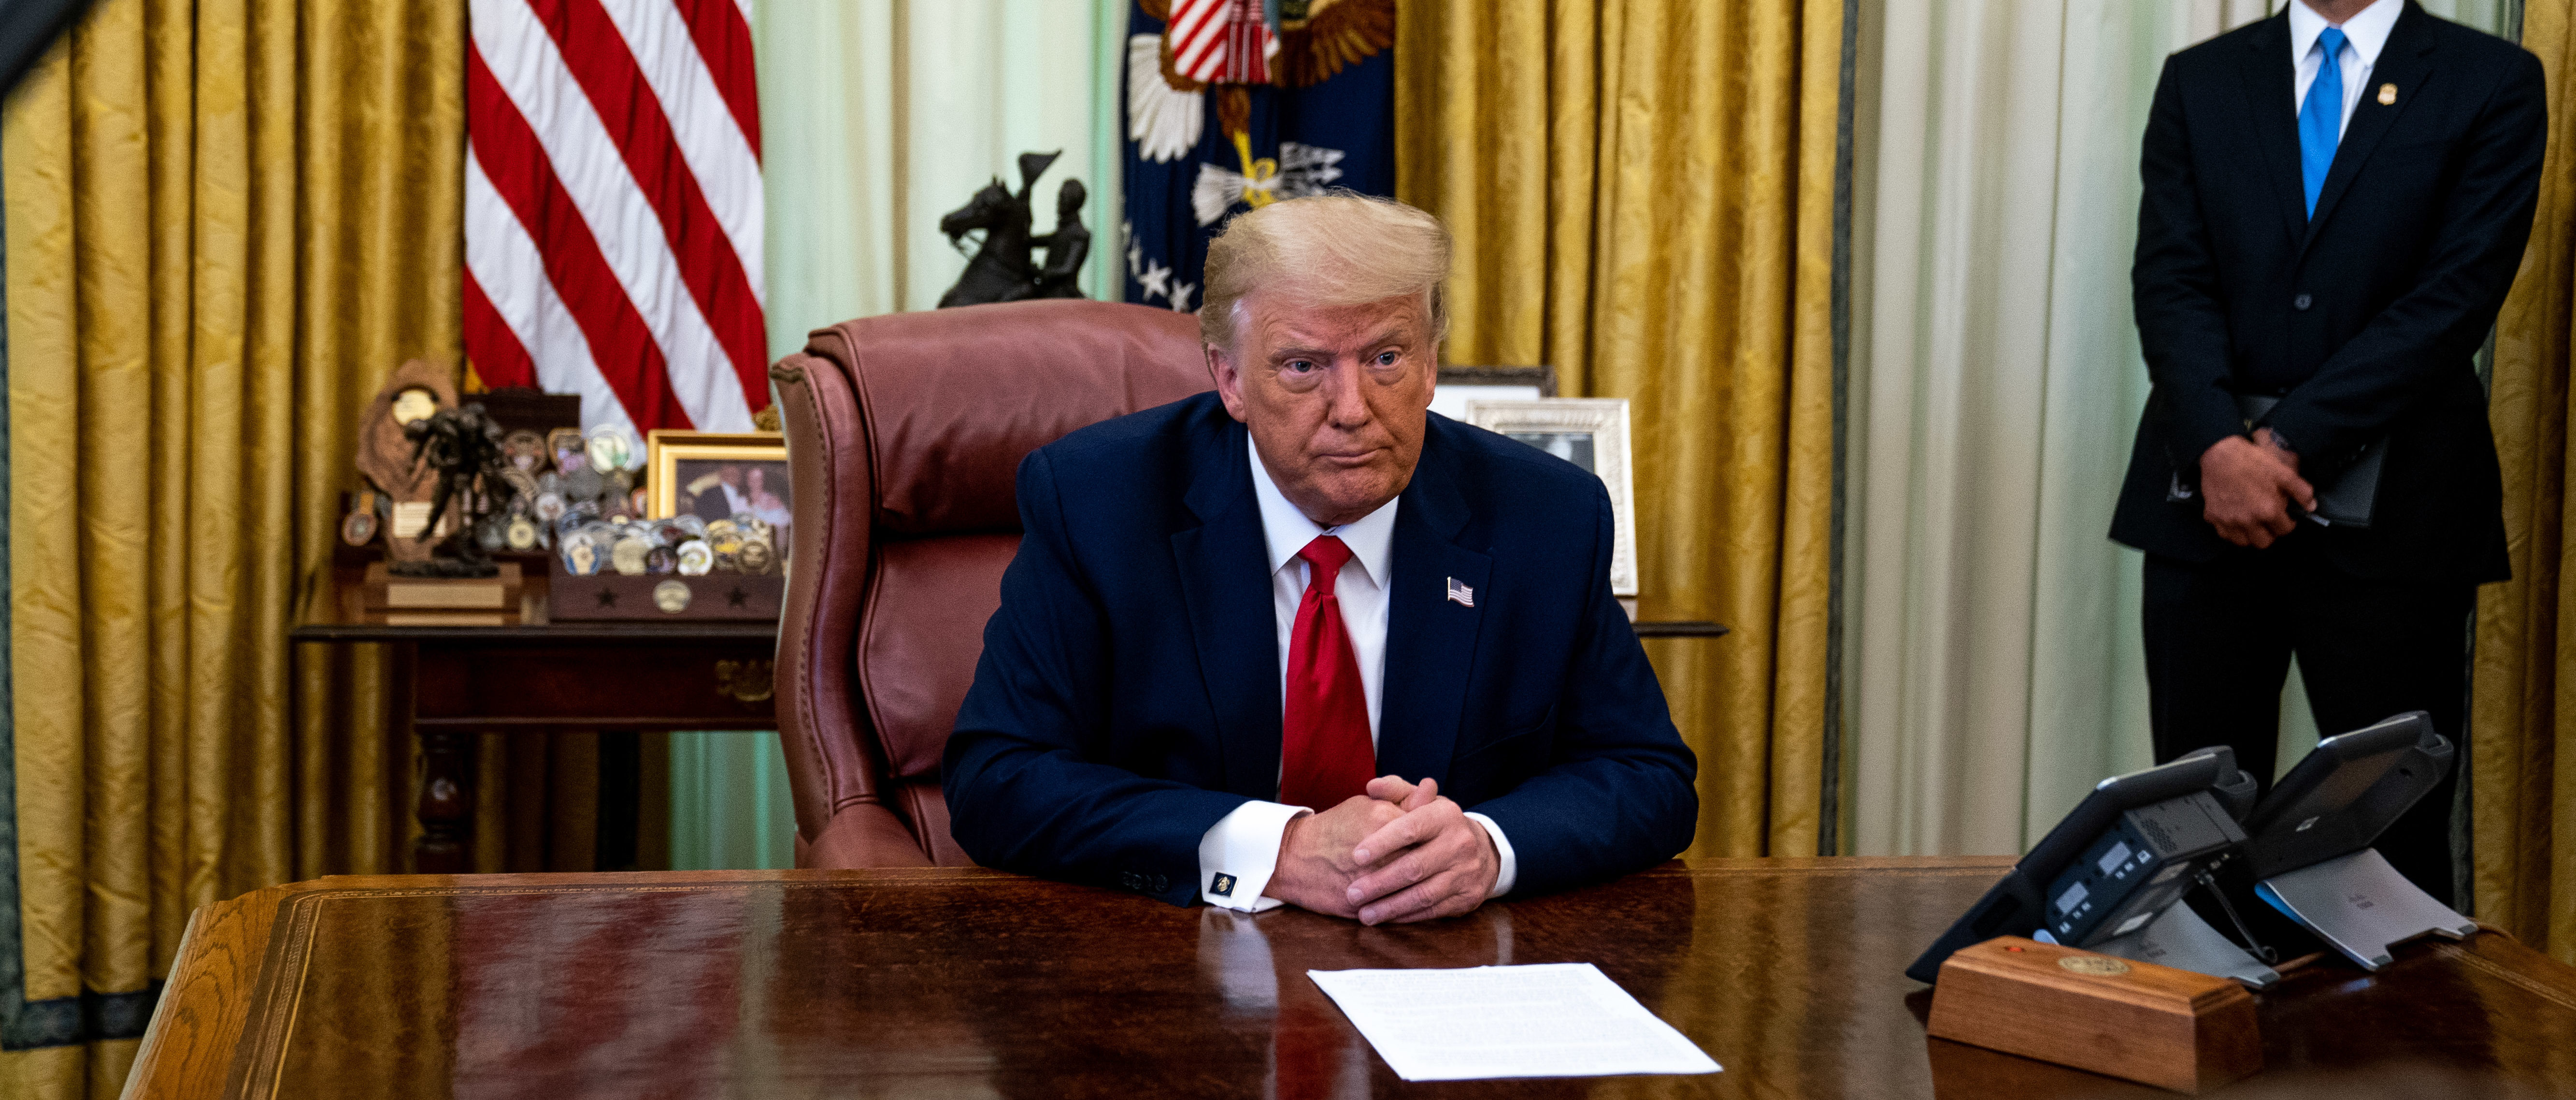 """WASHINGTON, DC - JULY 15: President Donald Trump speaks in the Oval Office of the White House after receiving a briefing from law enforcement on """"Keeping American Communities Safe: The Takedown of Key MS-13 Criminal Leaders"""" on July 15th 2020 in Washington DC. (Photo by Anna Moneymaker-Pool/Getty Images)"""